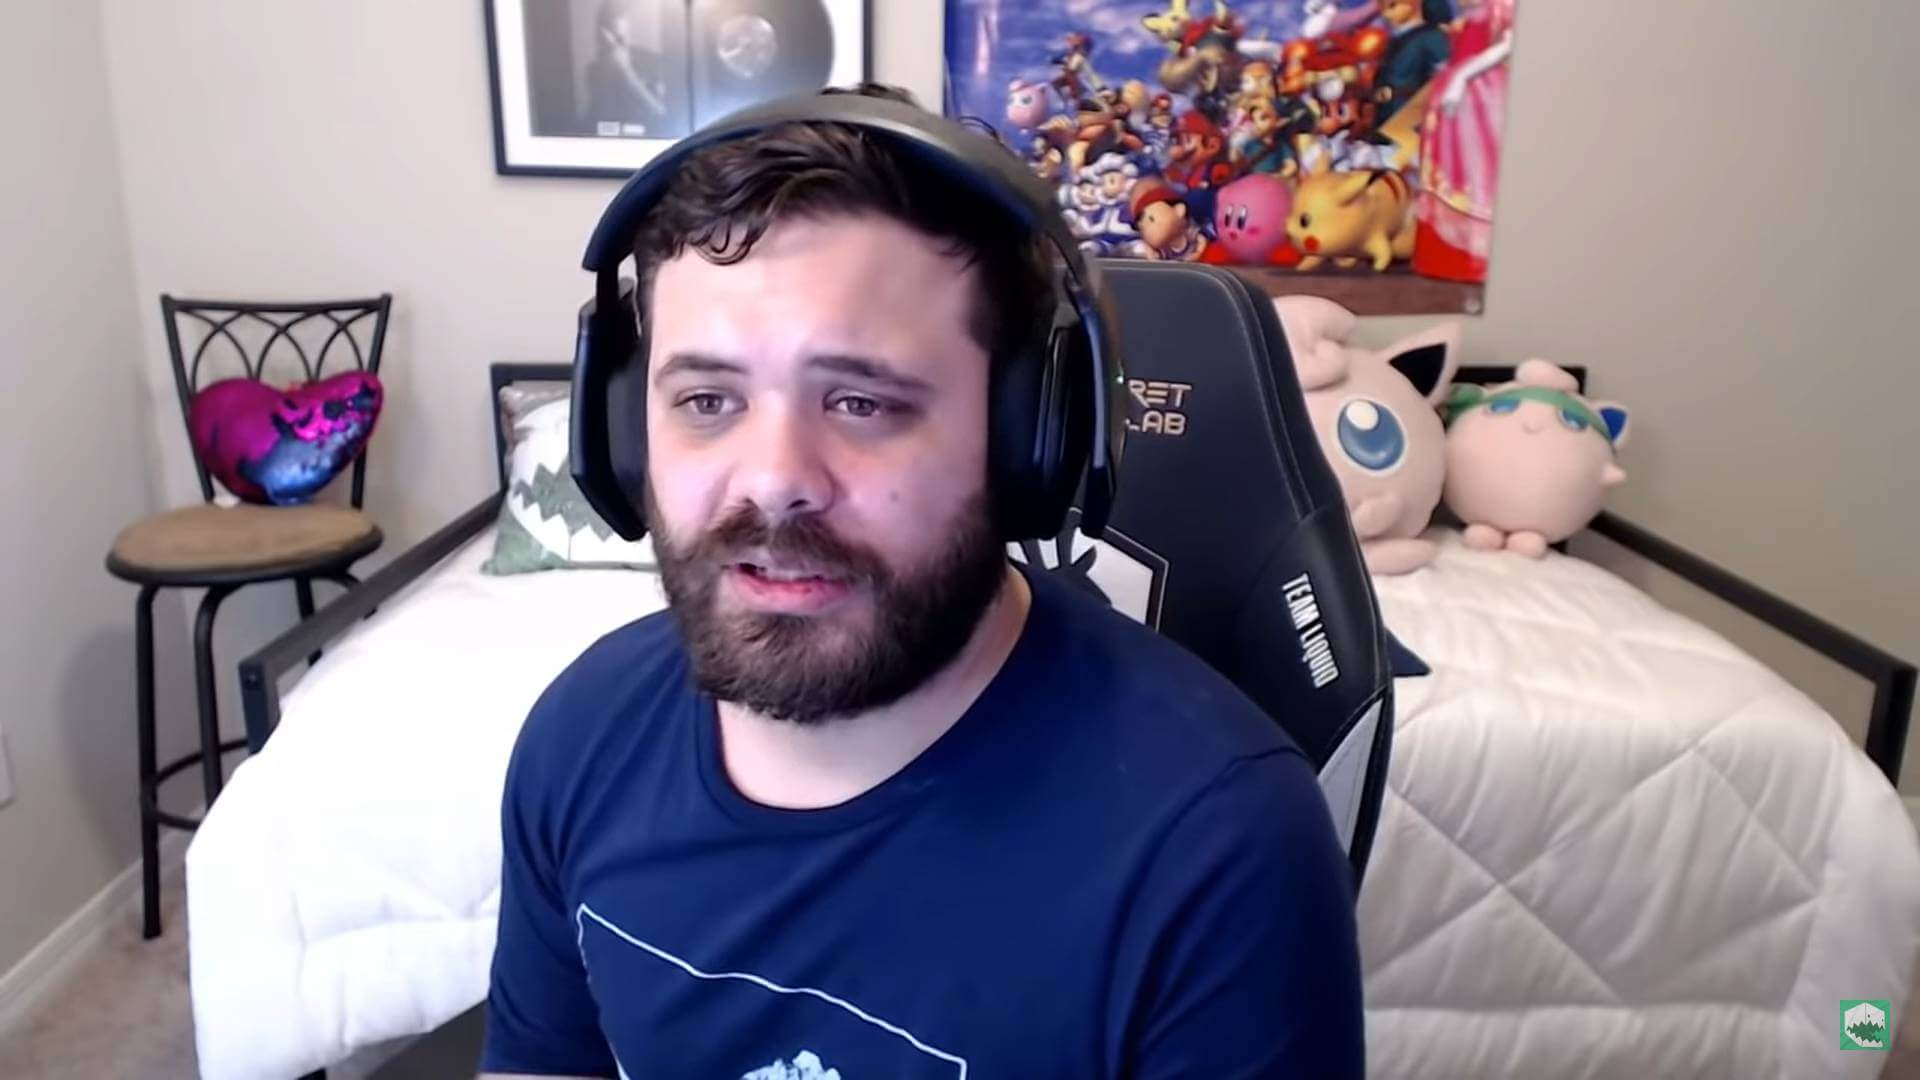 Hungrybox is the Next Pro Player to Respond to Allegations